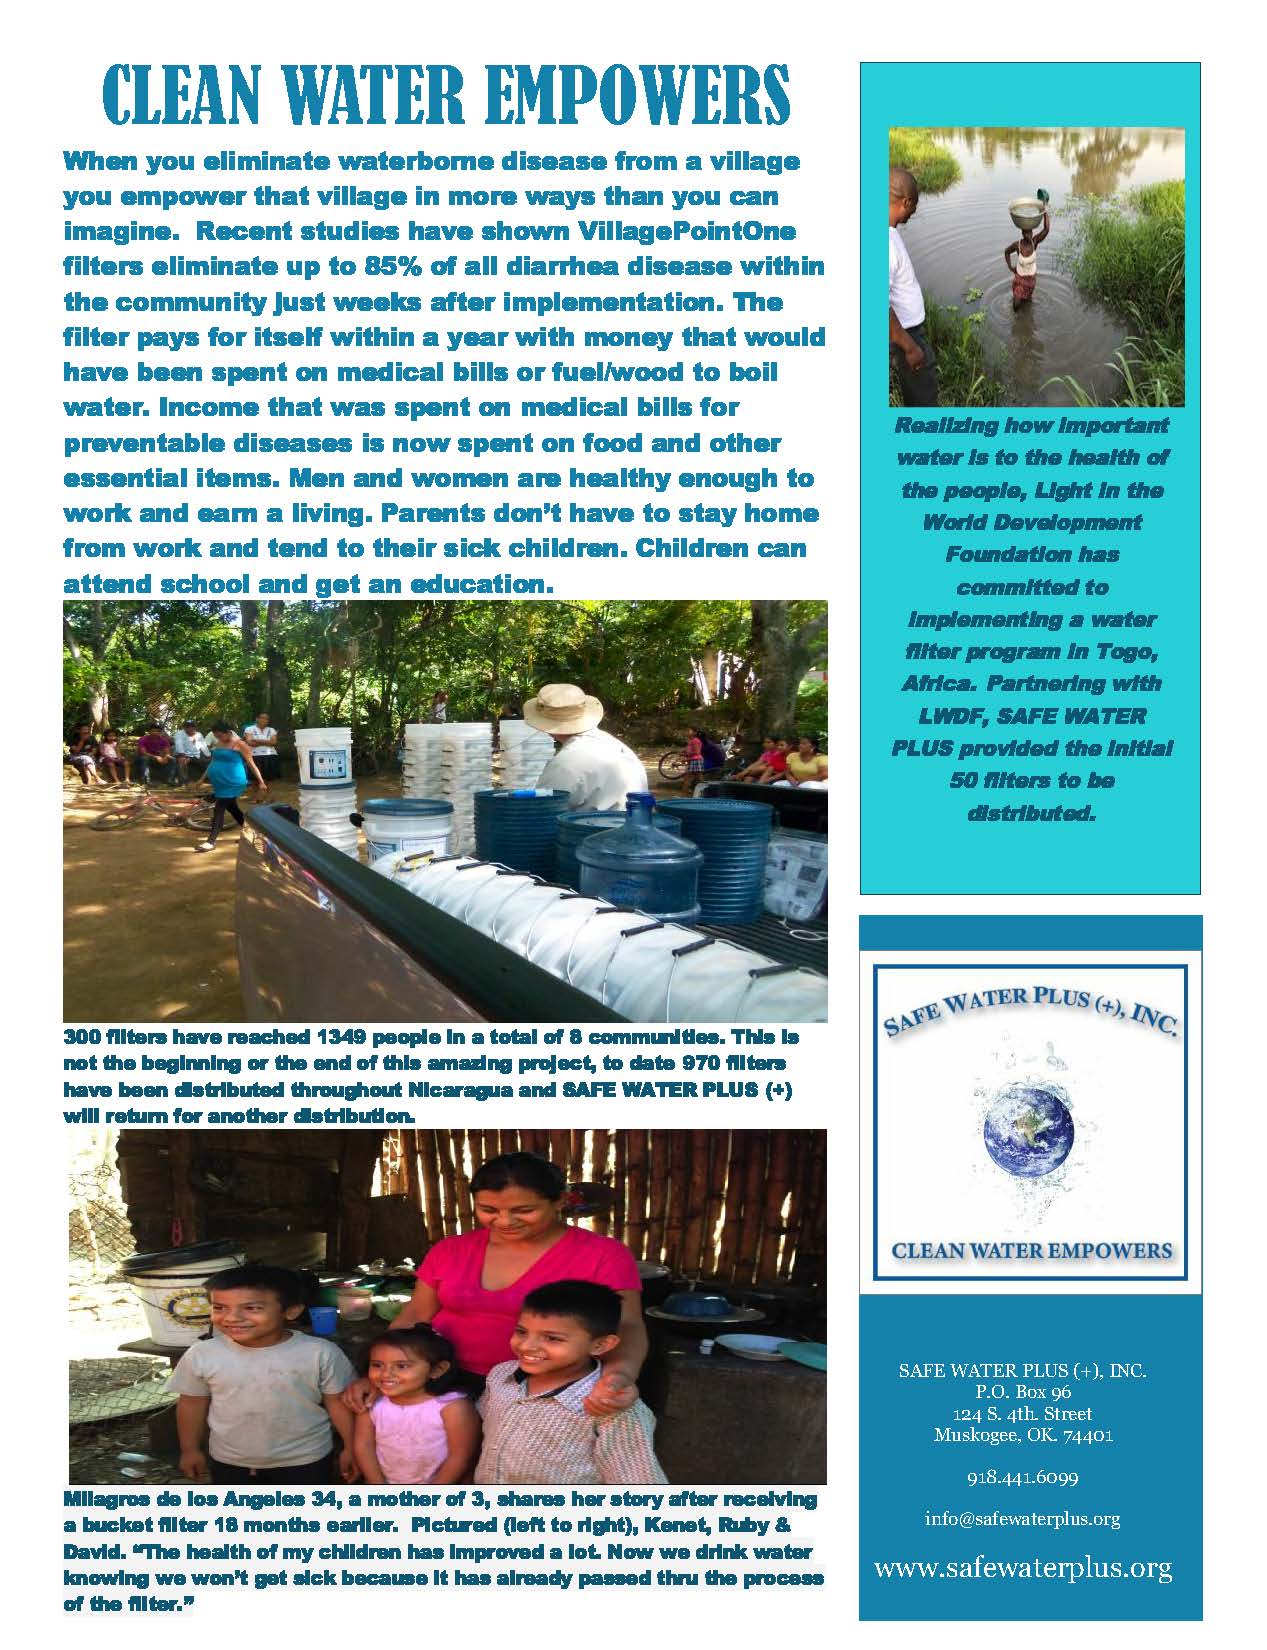 safe_water_plus_flyer